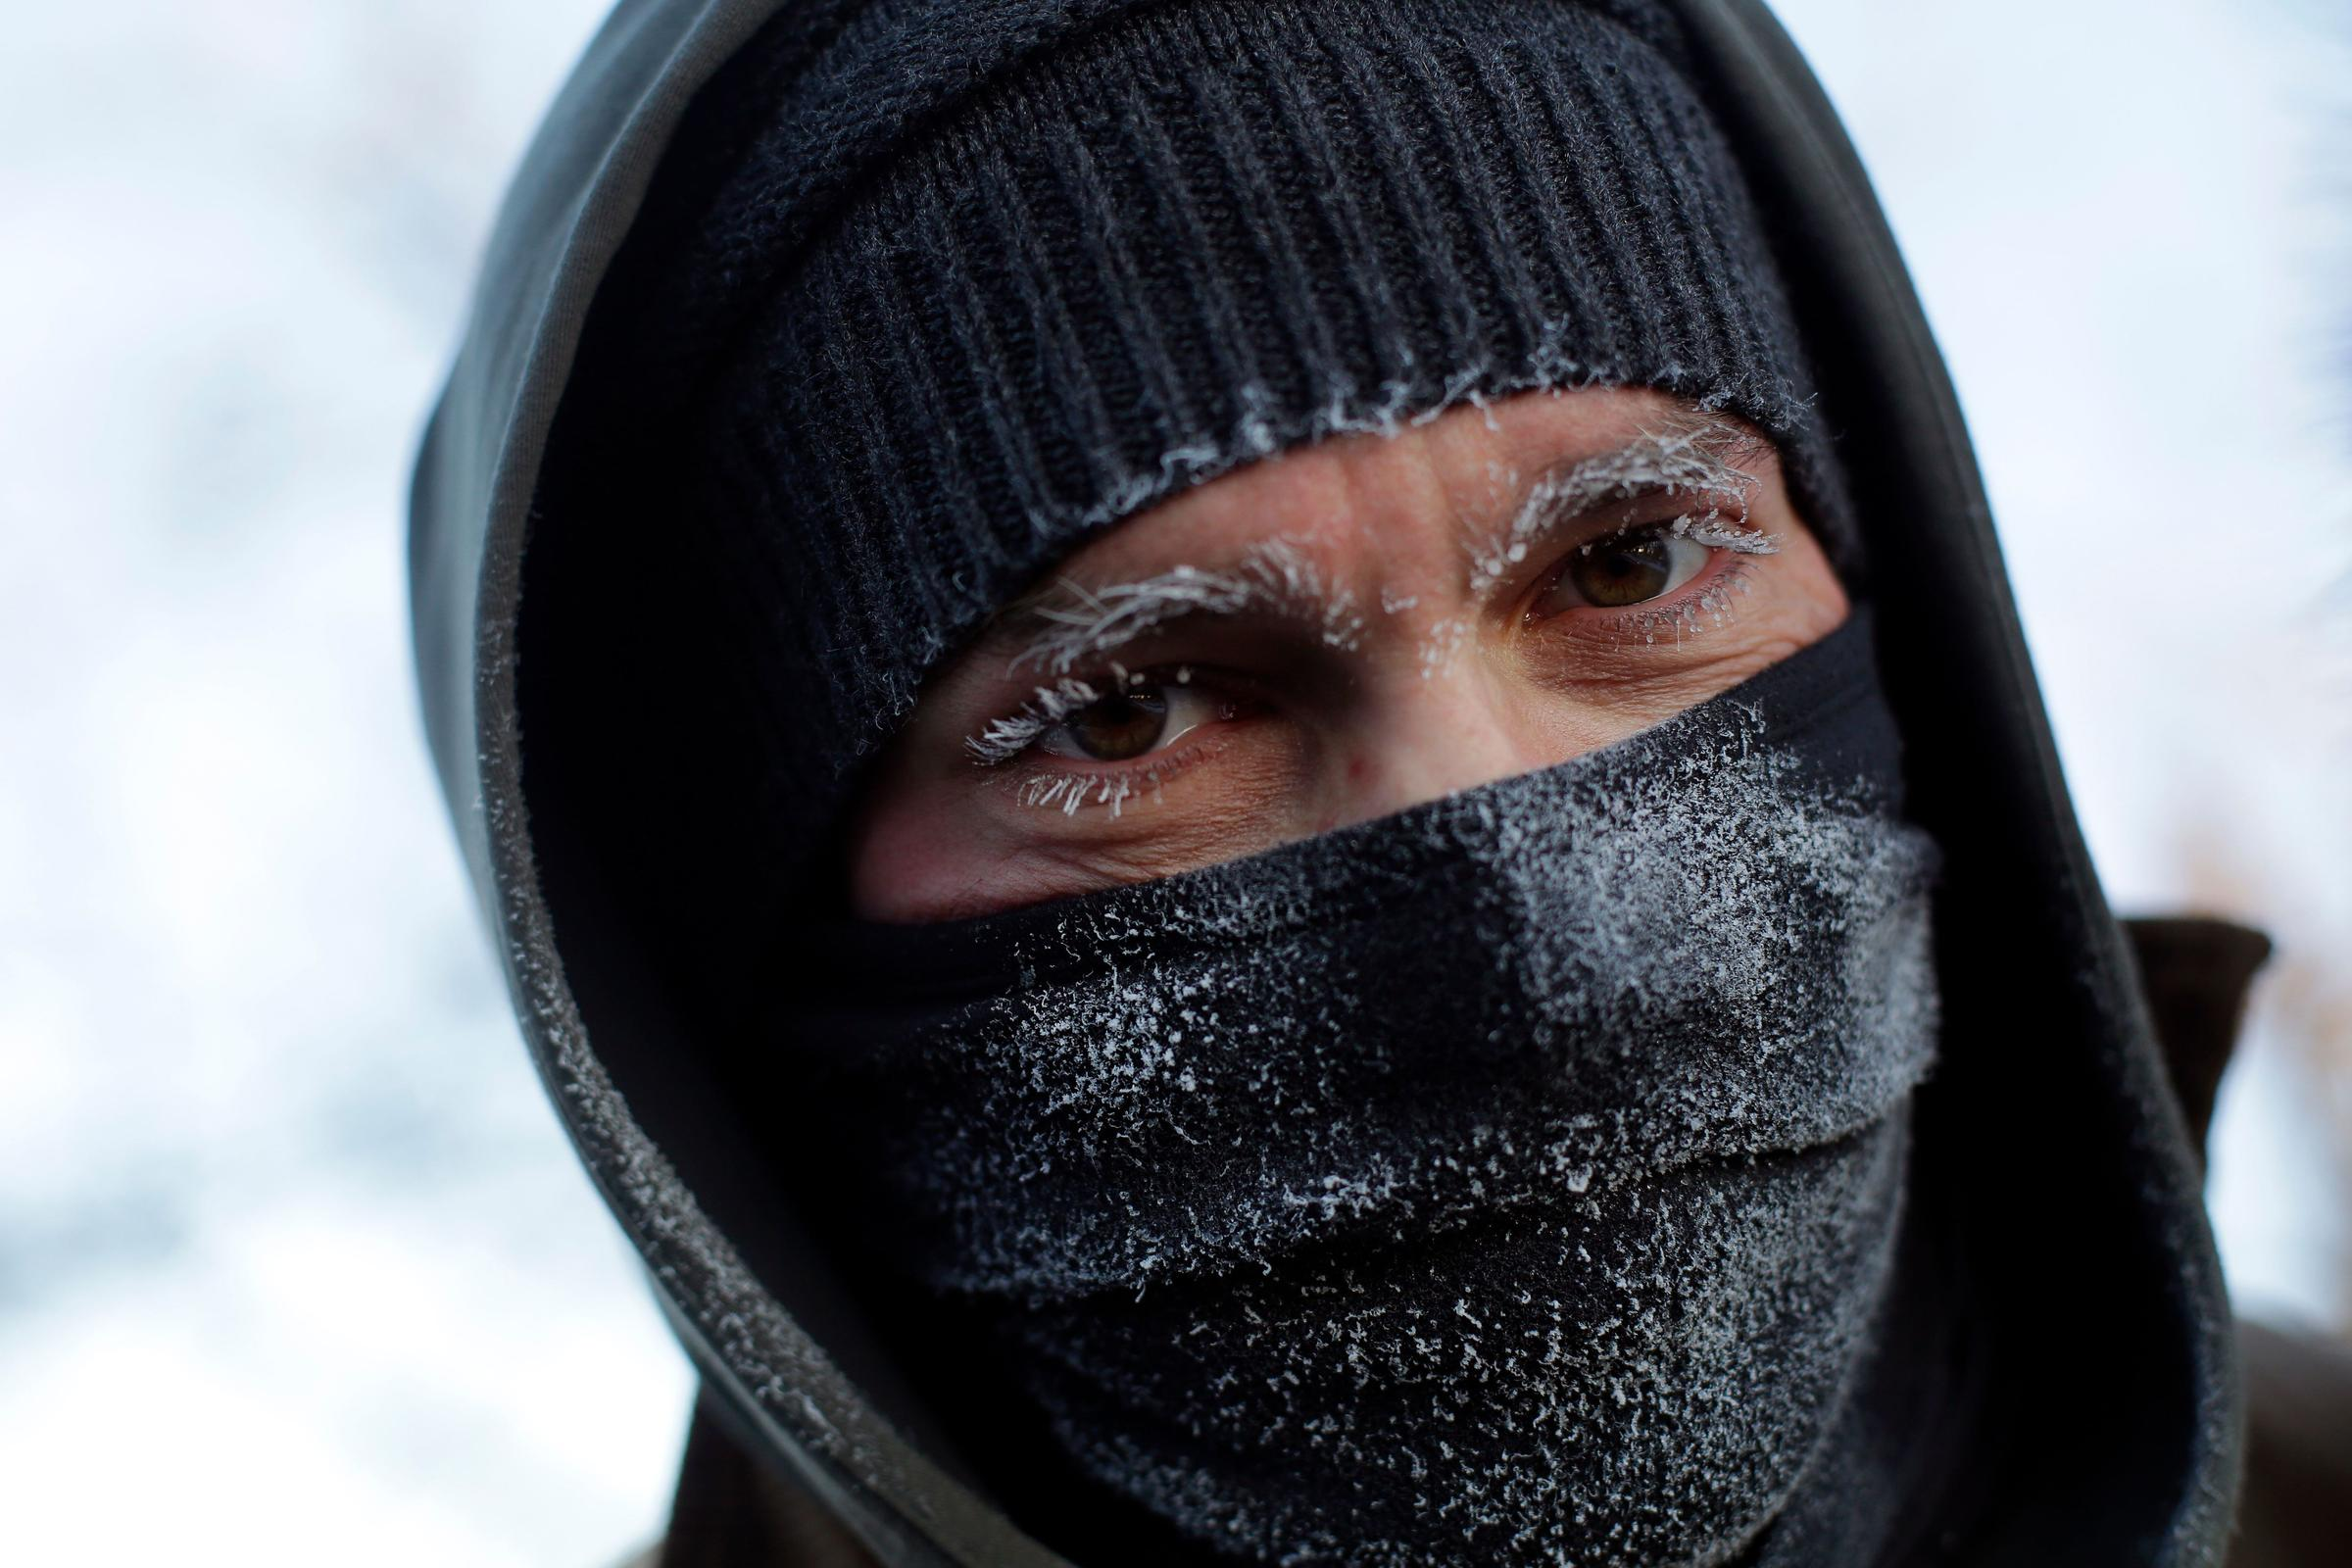 Medical effects of extremely low temperatures: why they hurt and how do we prevent the damage?